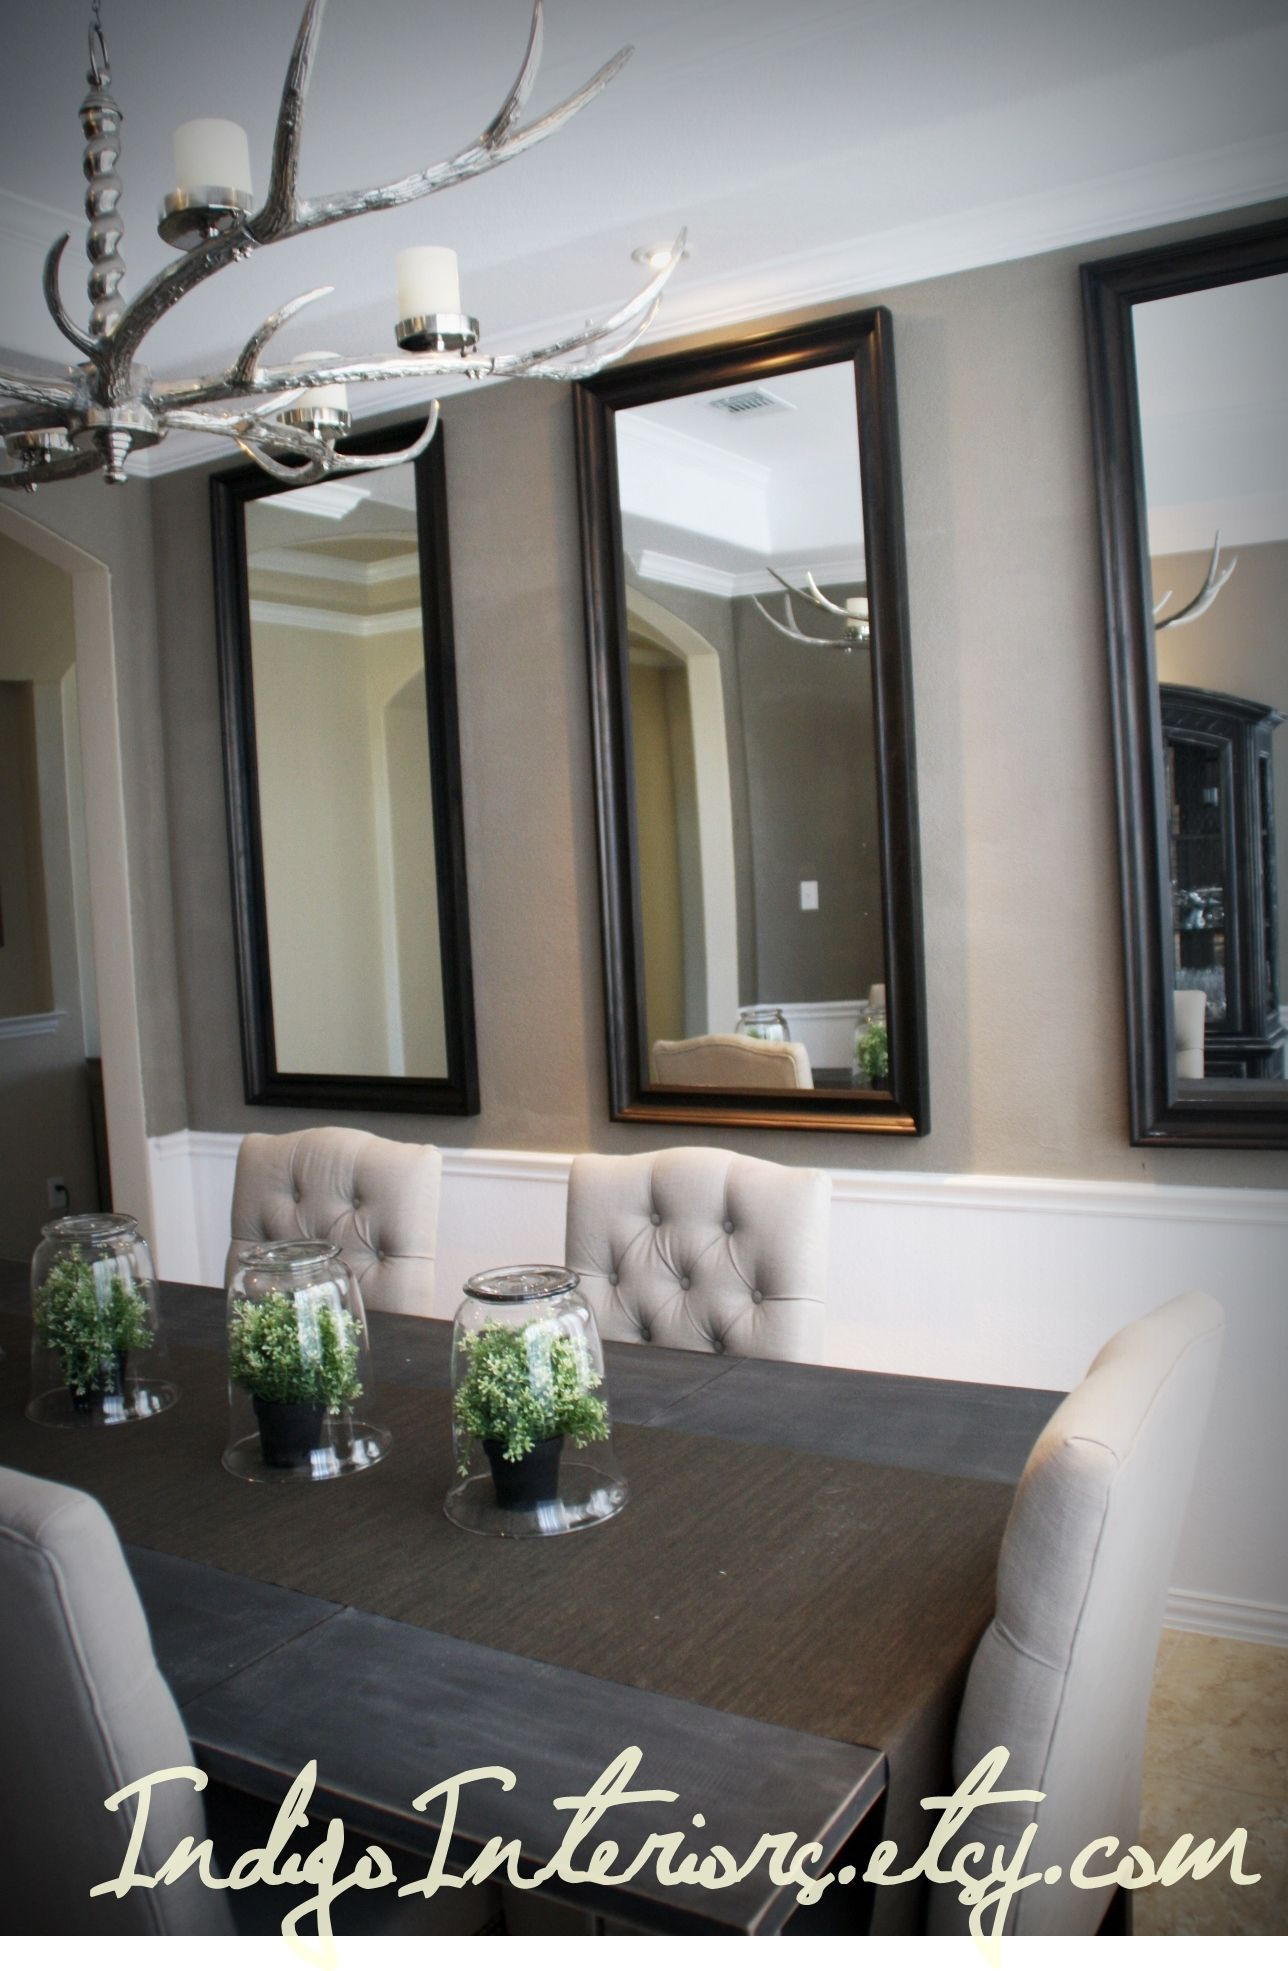 Spiegel Esszimmer Silber Make A Statement In The Dining Room With Three Large